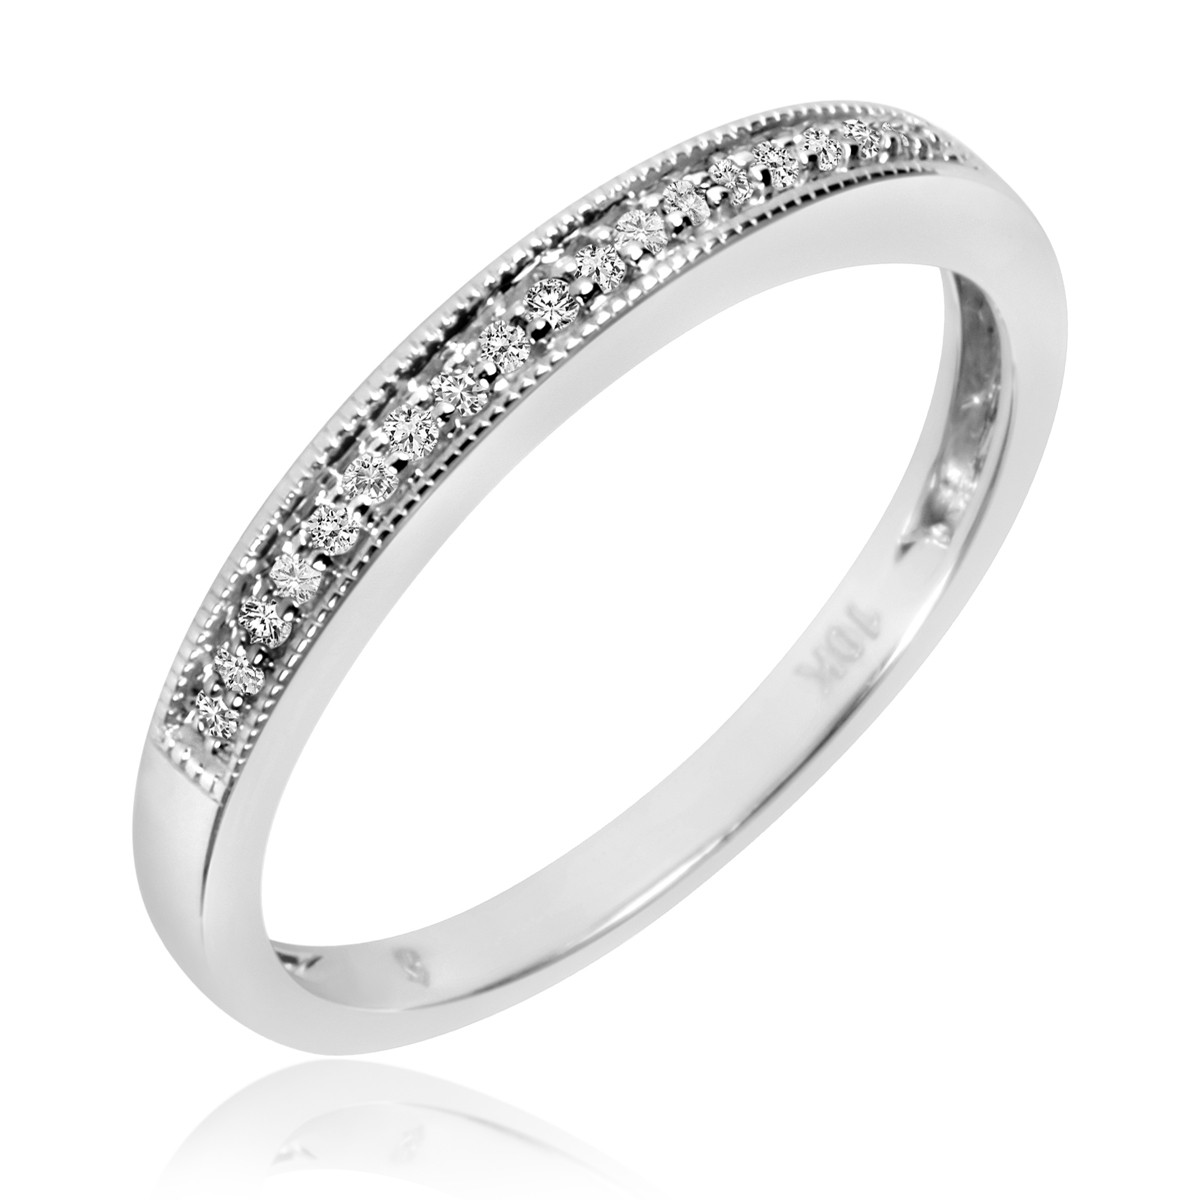 1/10 CT. T.W. Diamond Ladies' Wedding Band 14K White Gold